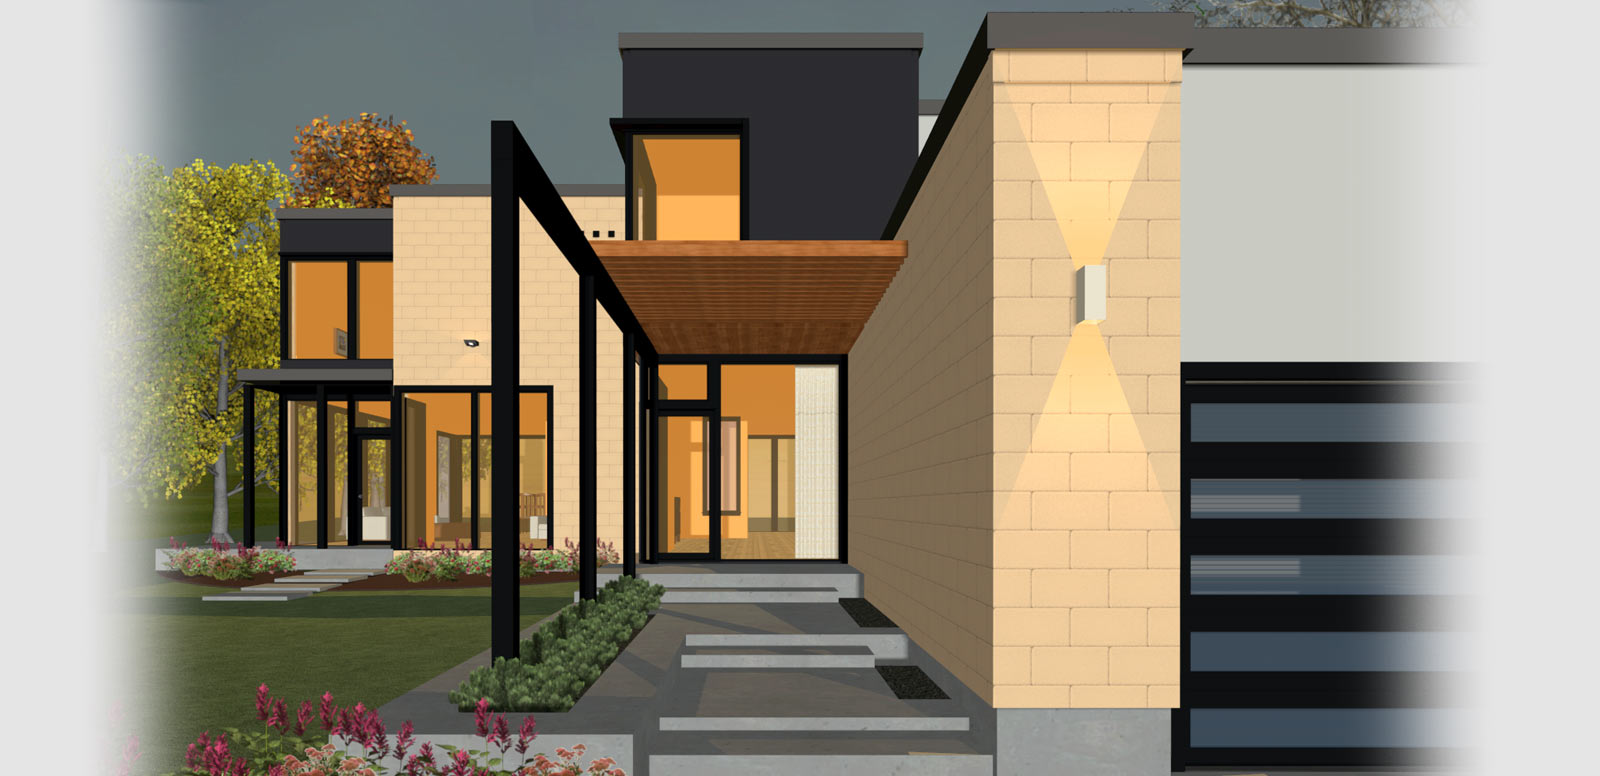 residential home designers. Contemporary or modern home design Home Designer Software for Design  Remodeling projects